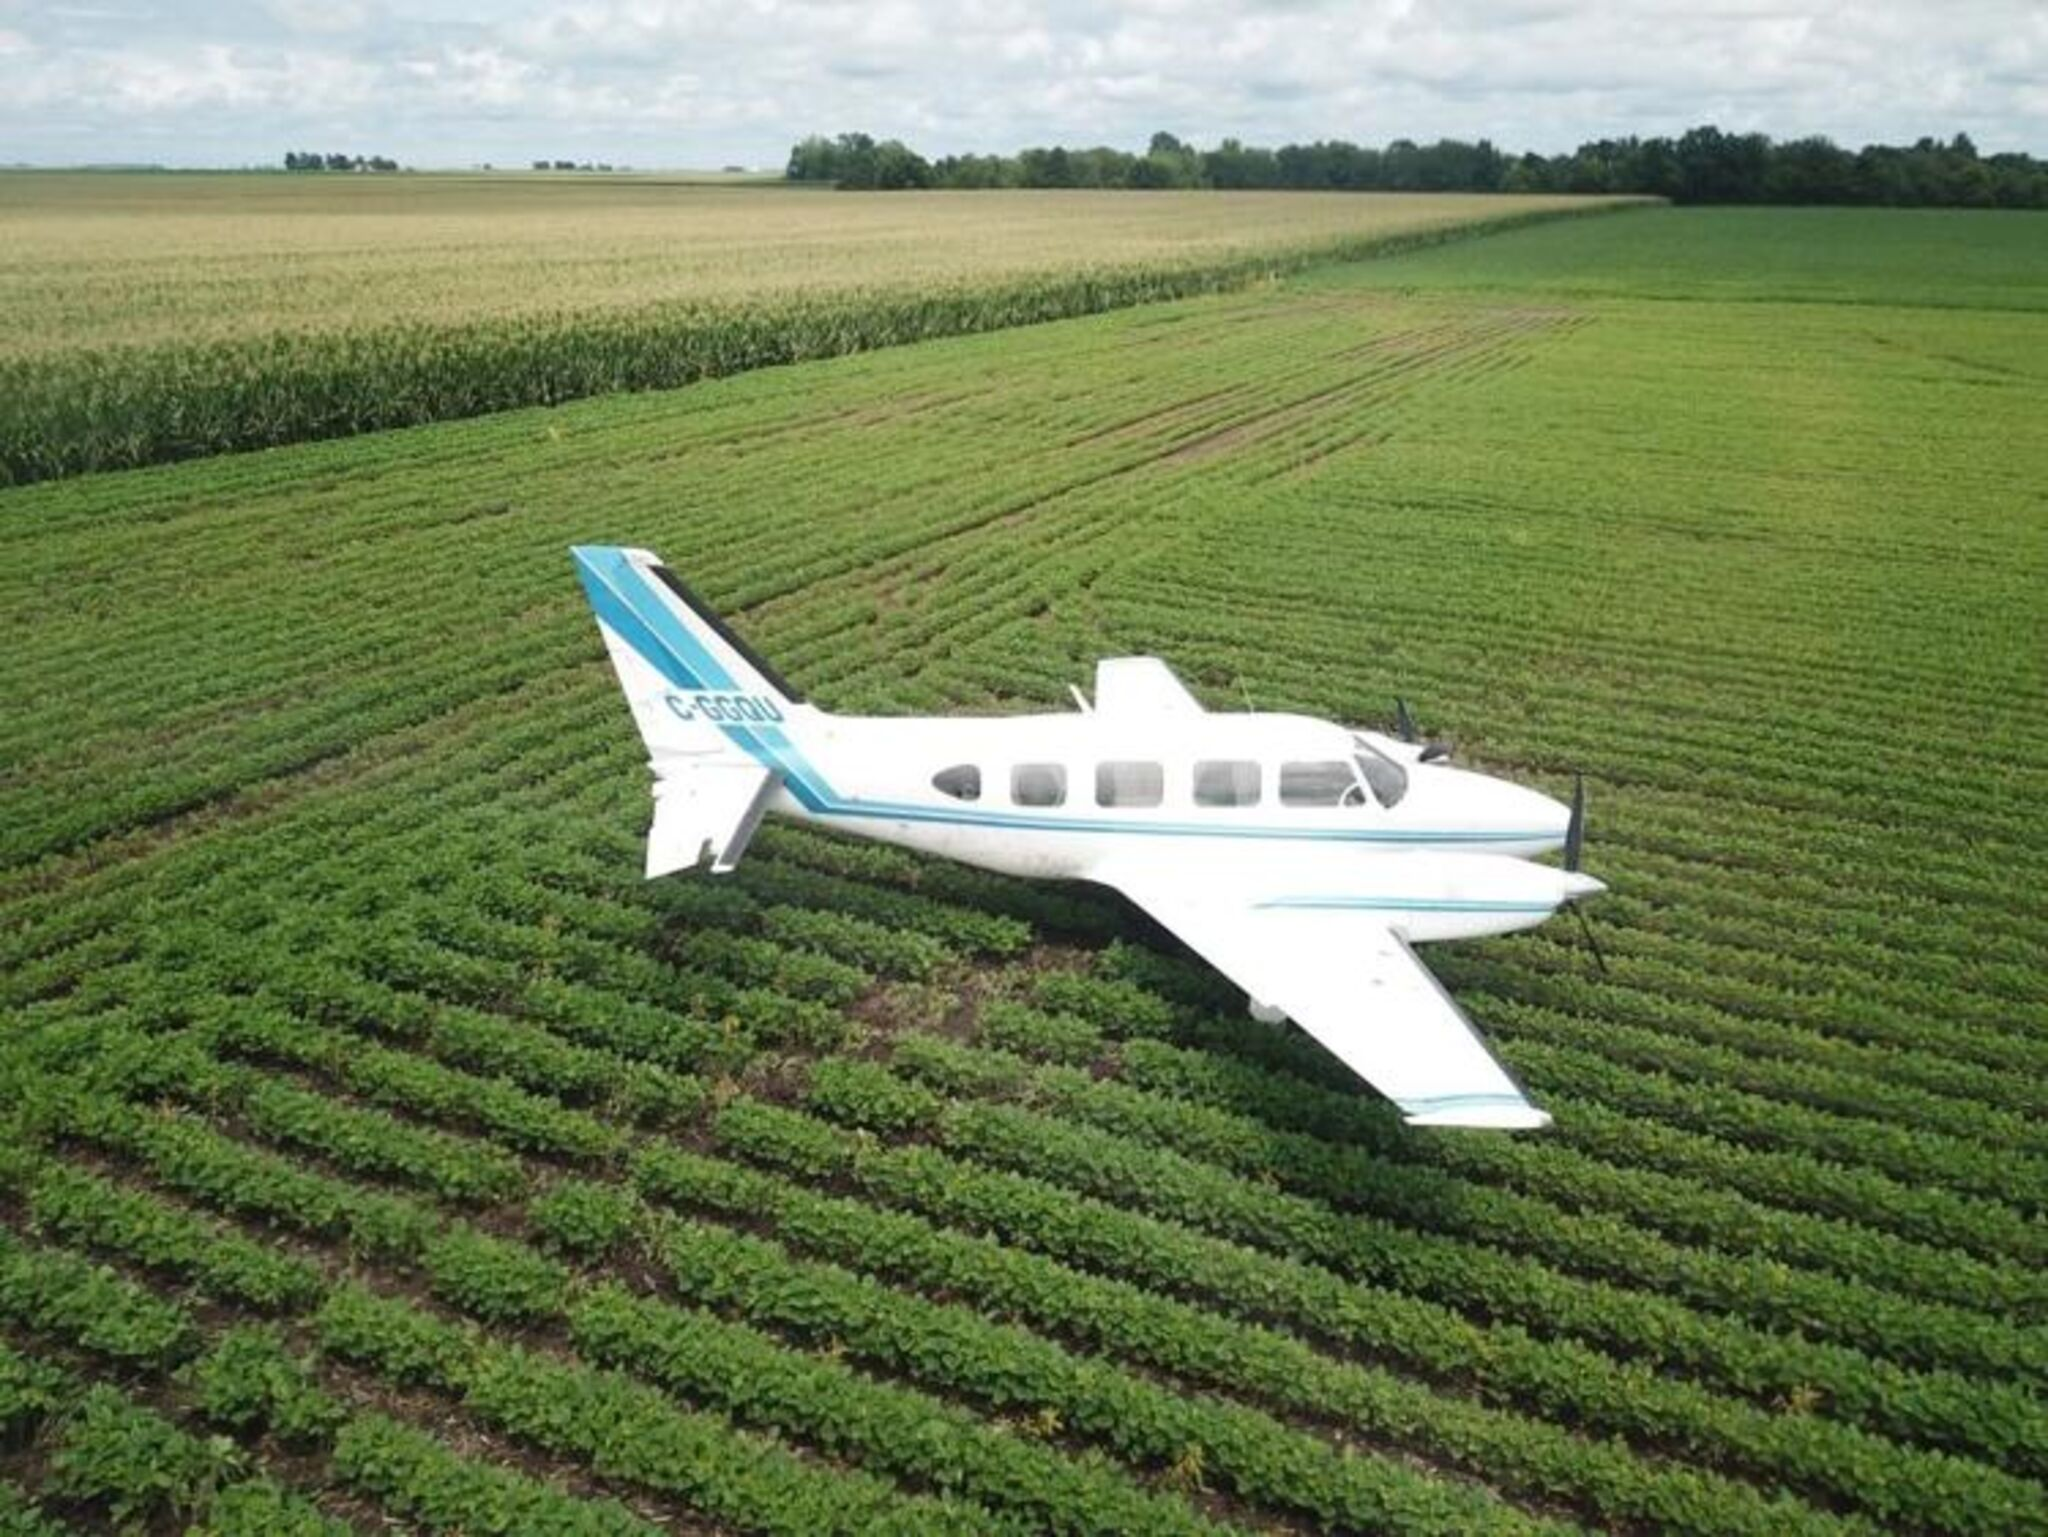 The plane came to rest in a soybean field.